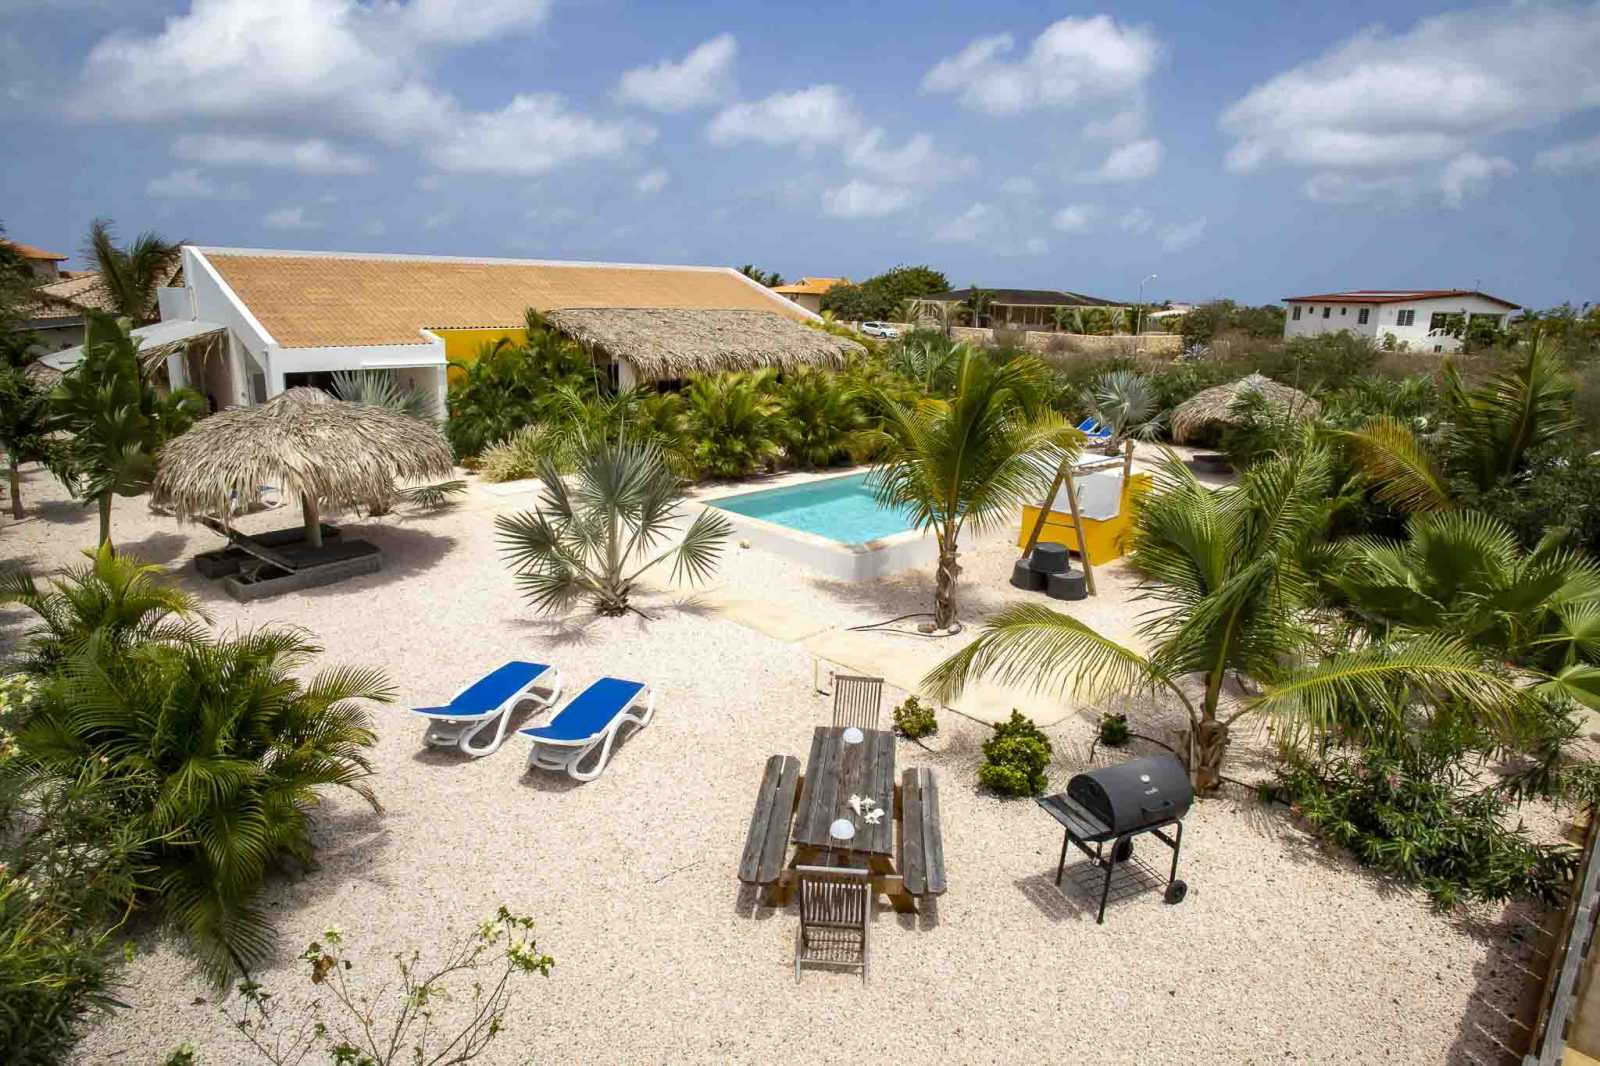 Luxury Villa Apartments for rent Bonaire - Kas Tuna